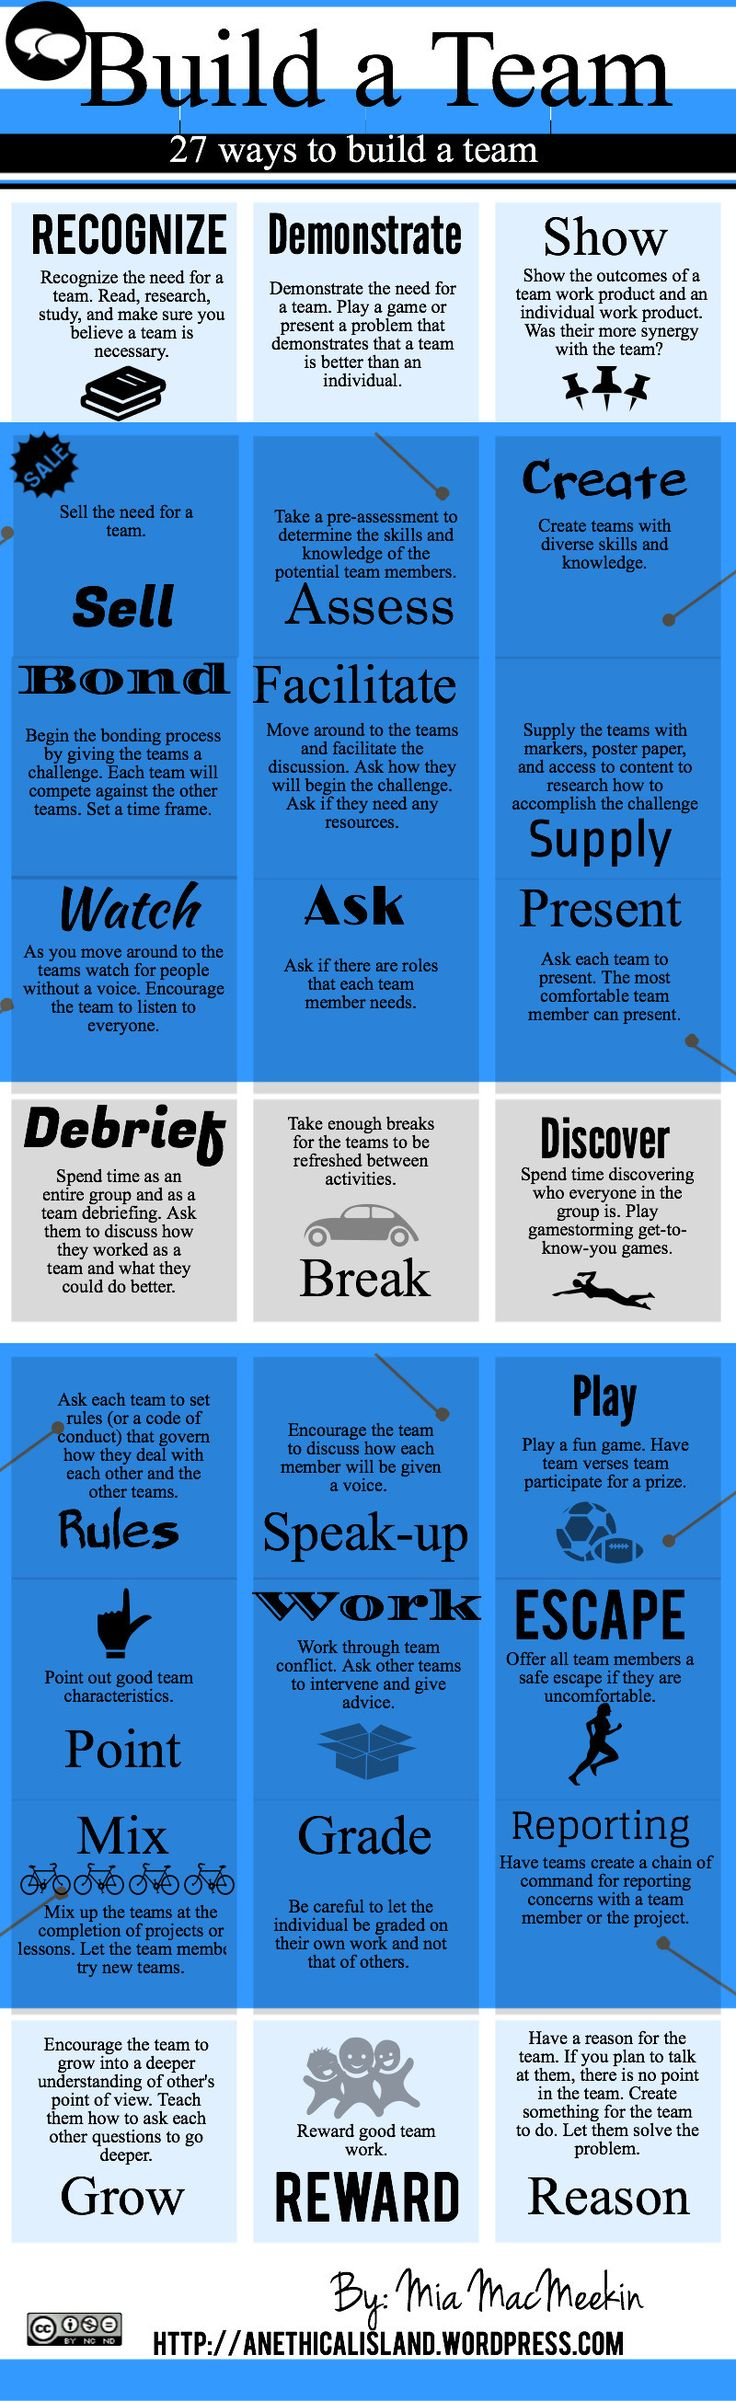 best images about team building activities quick we should provide students the right environment where they can work in teams